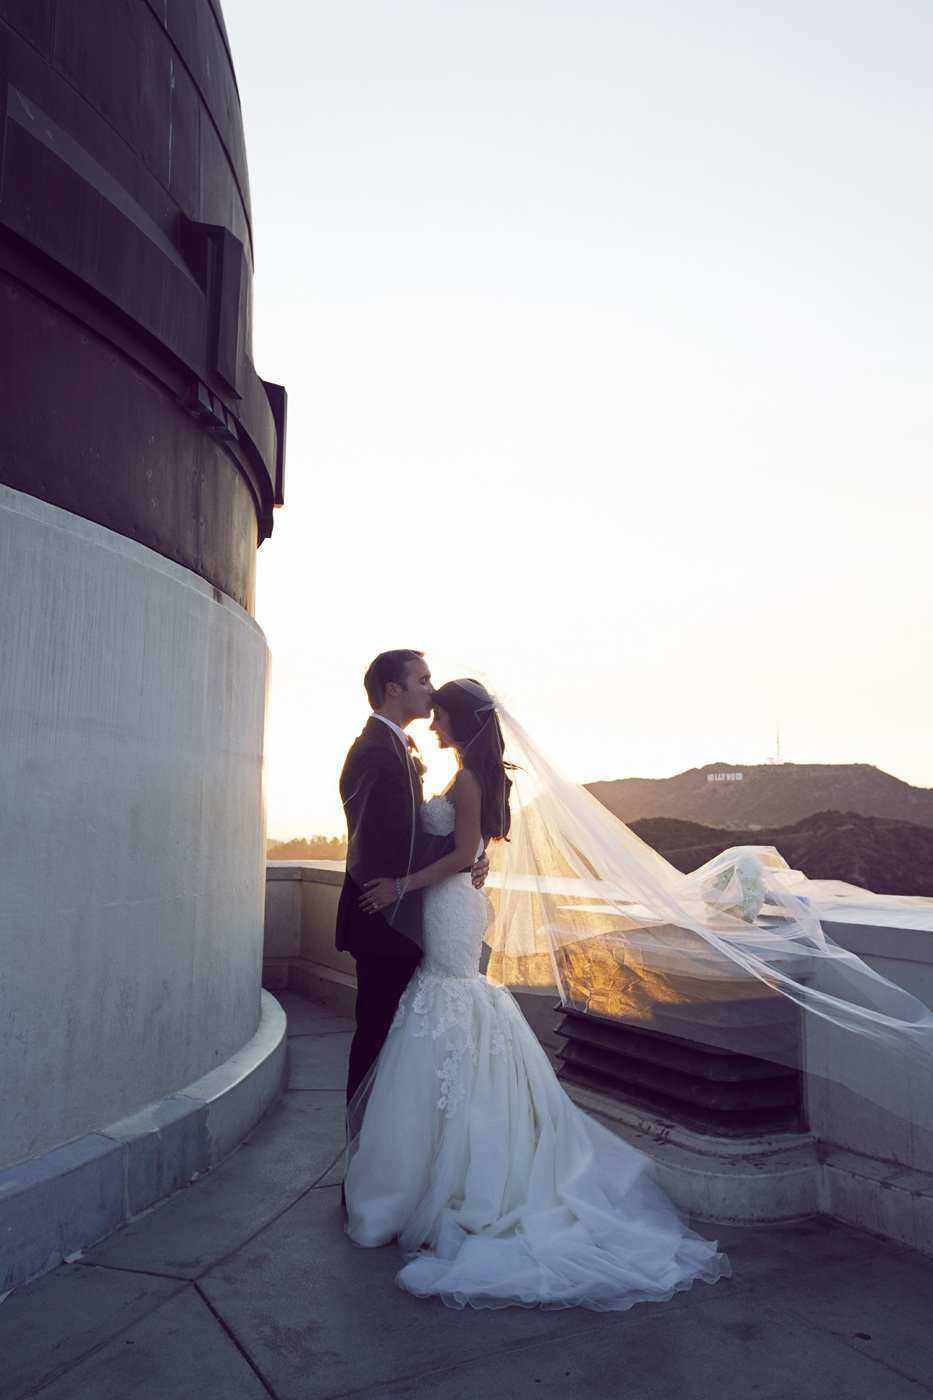 045DukePhotography_DukeImages_weddings_losangeles.jpg